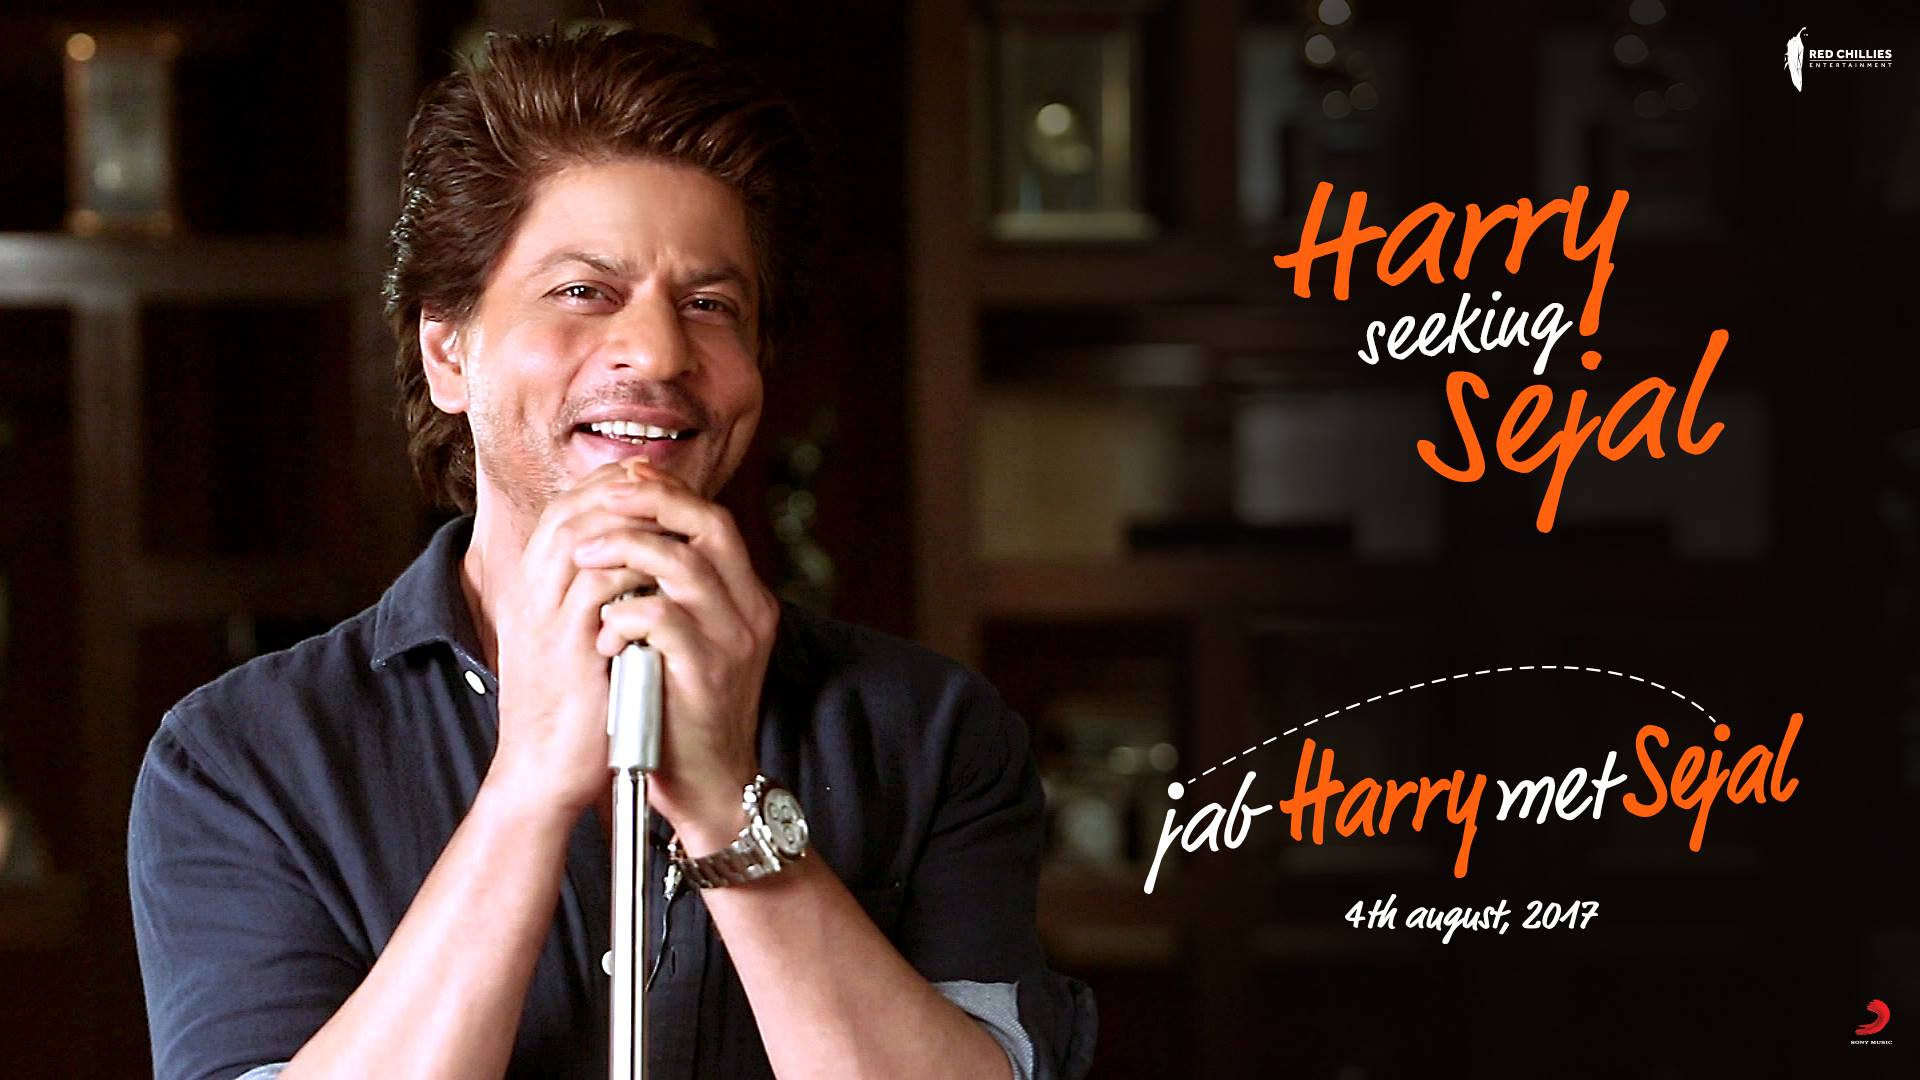 Kithe hai kudi... Kithe hai meri Sejal? Aa raha hun dil waapas lene. Let me know your city:  http://www.redchillies.com/sejal/   #HarrySeekingSejal  Red Chillies Entertainment